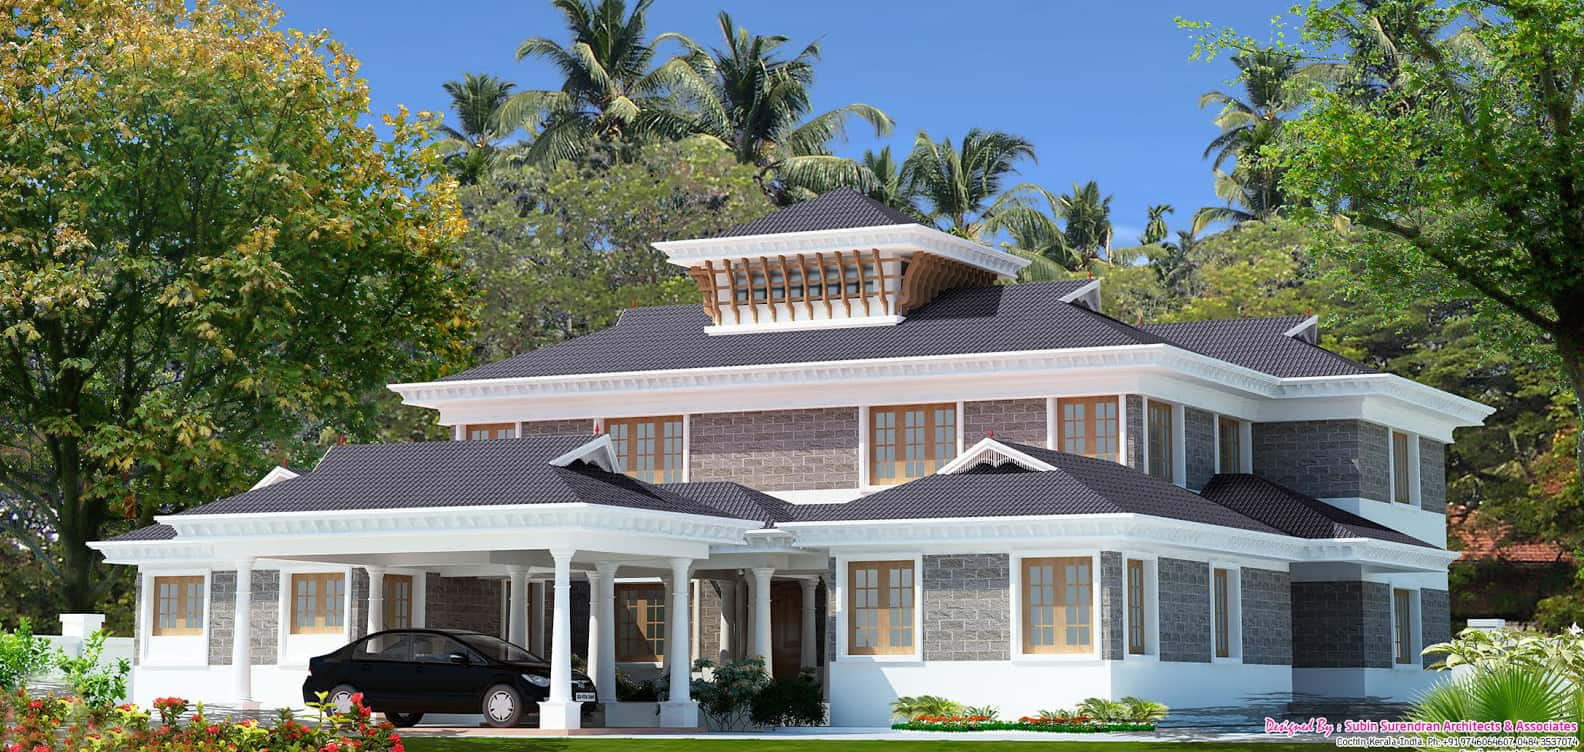 Home design interior most beautiful houses in kerala for Most beautiful house in kerala